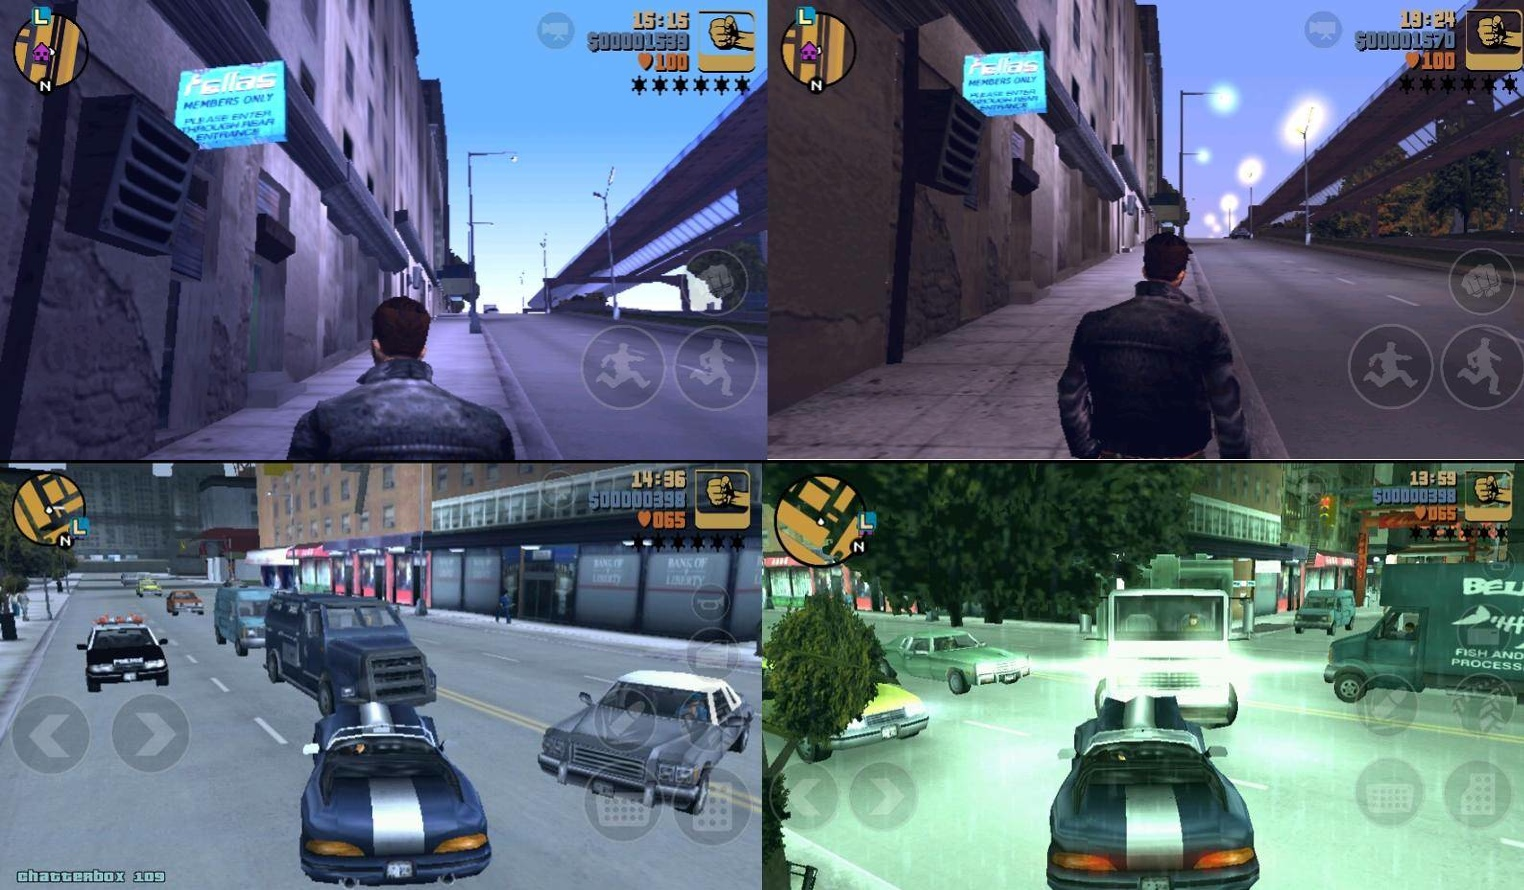 Grand theft auto iii v1 3 crack apk sd data